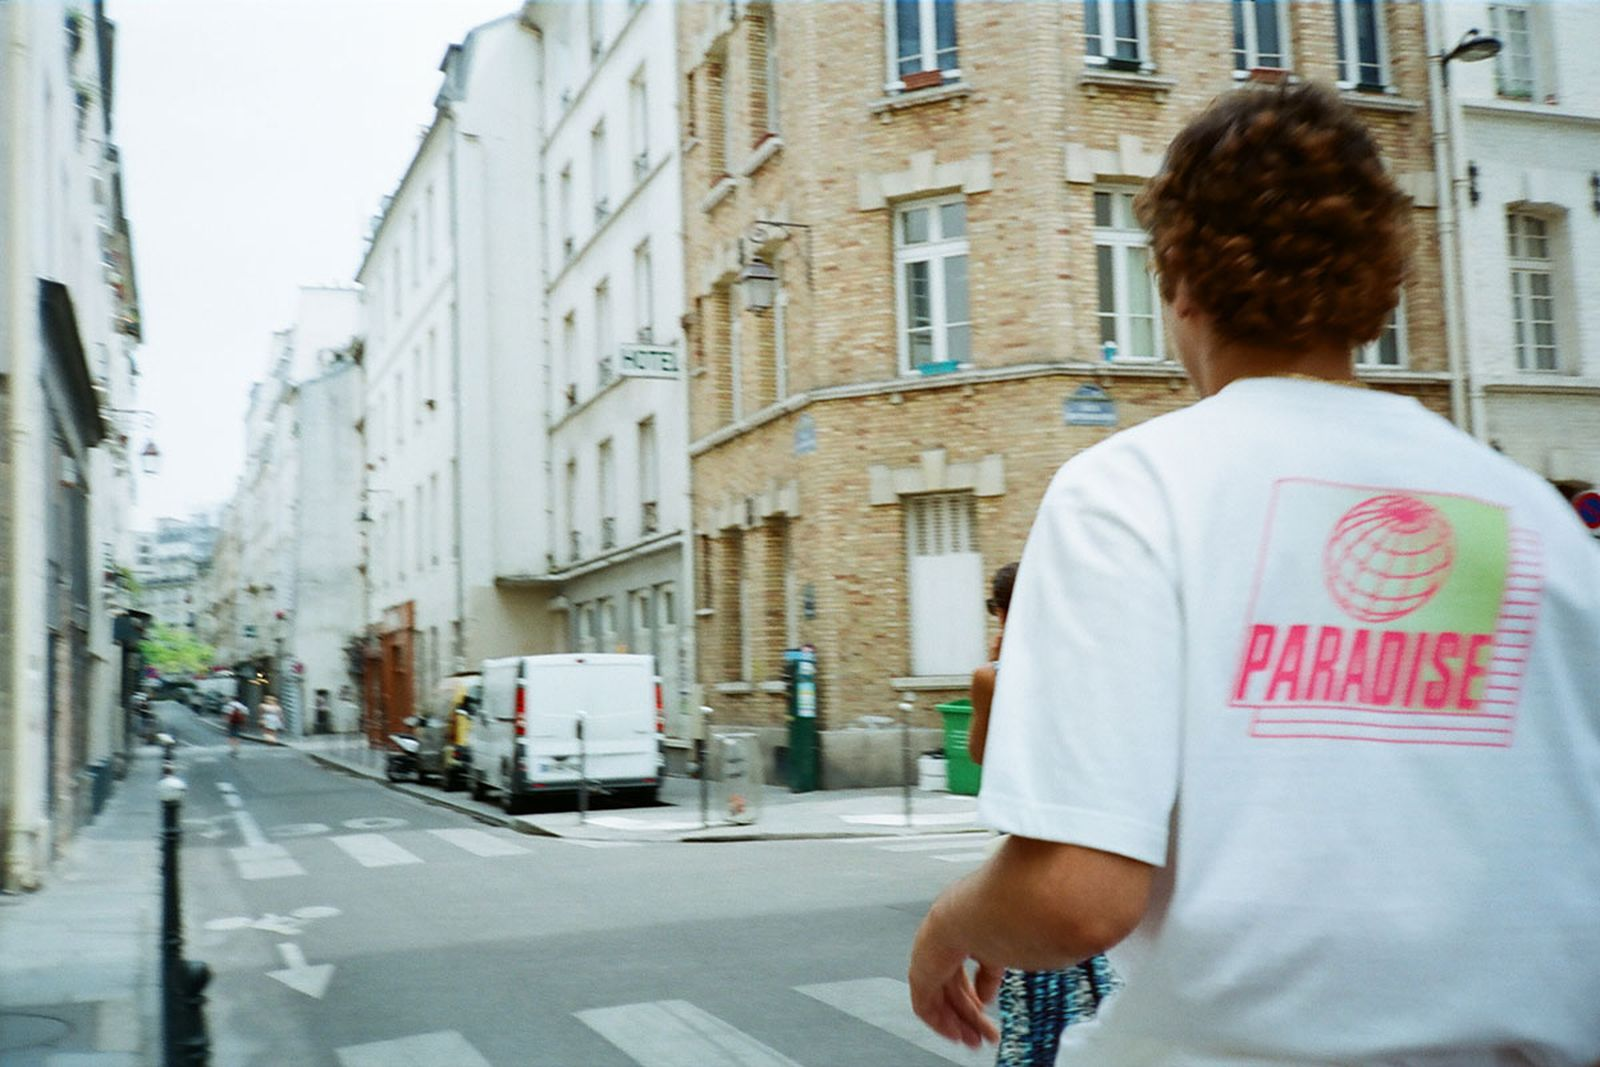 paradise youth club ss20